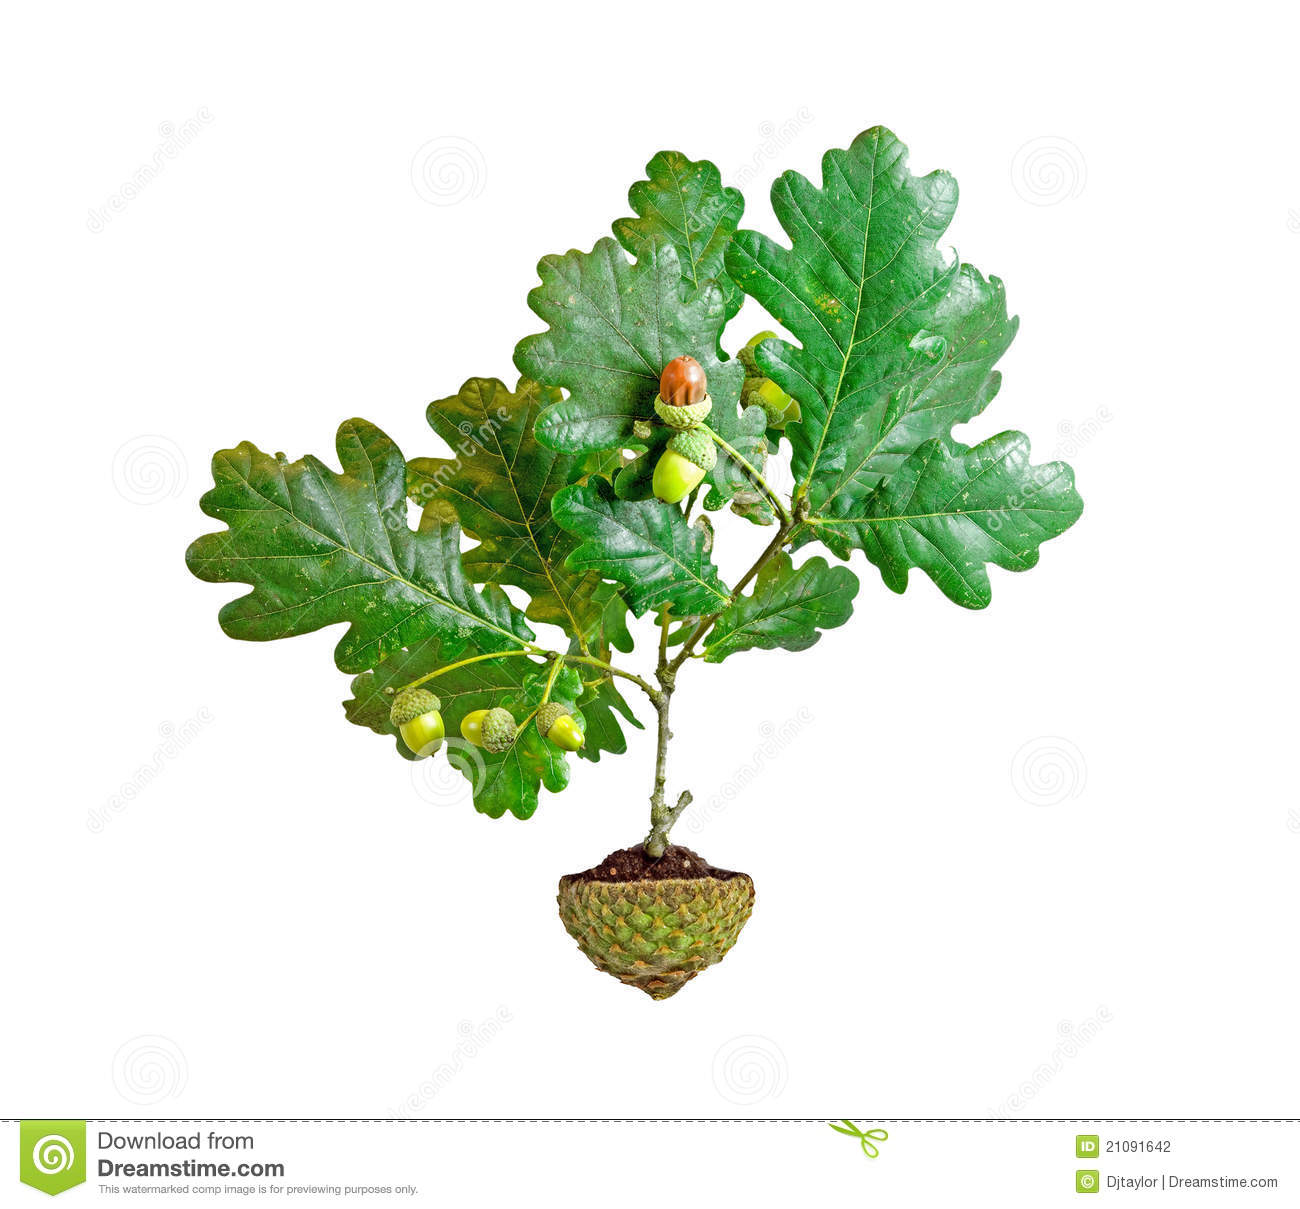 Planting An Oak Tree Best Time : Oak tree growing from soil in acorn cup stock photography image